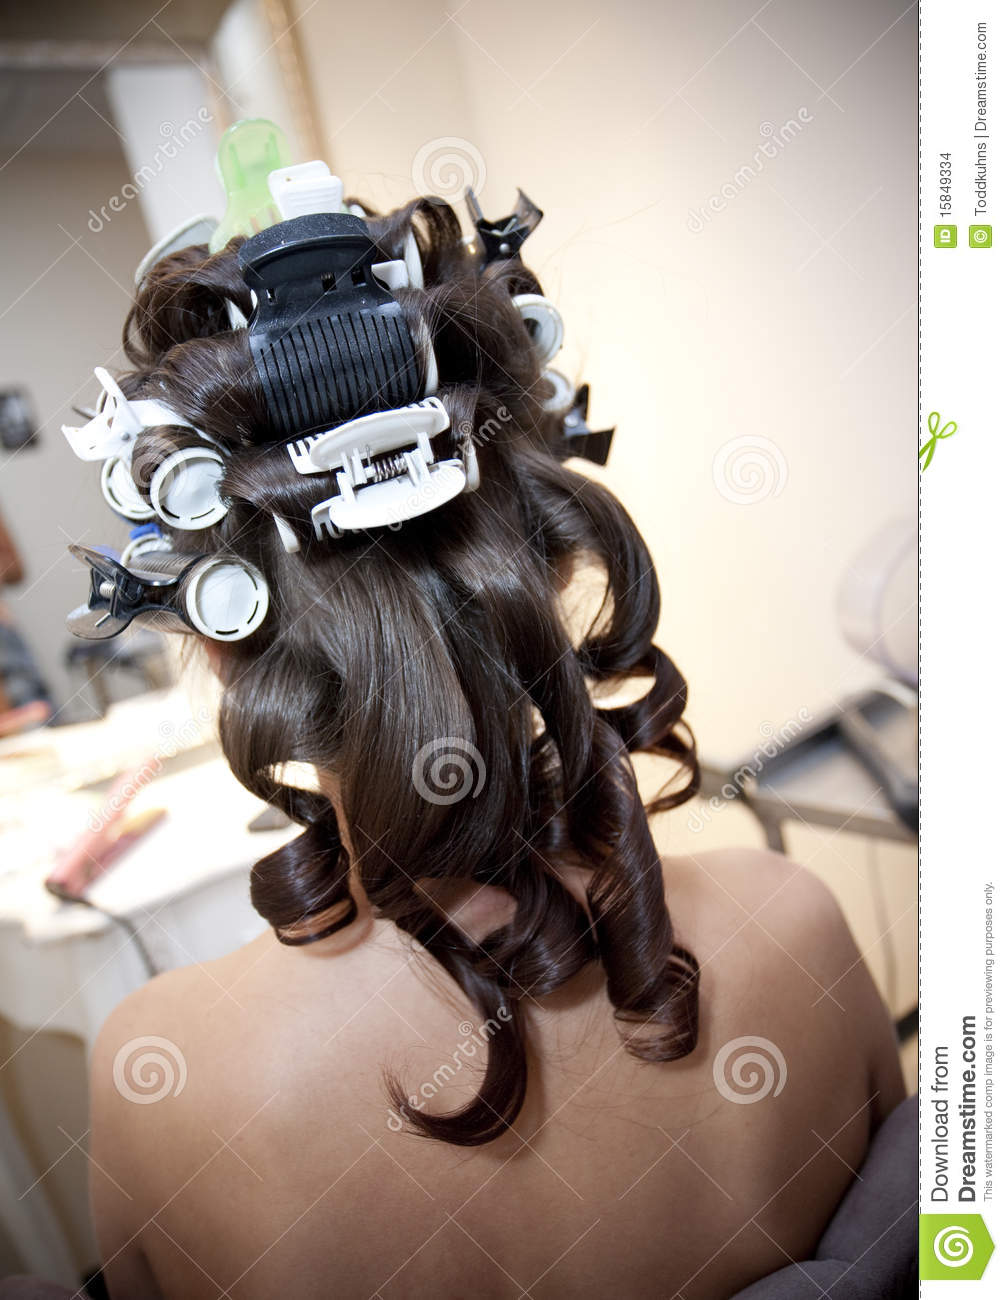 Hair in Rollers stock photo  Image of hair, hairroller